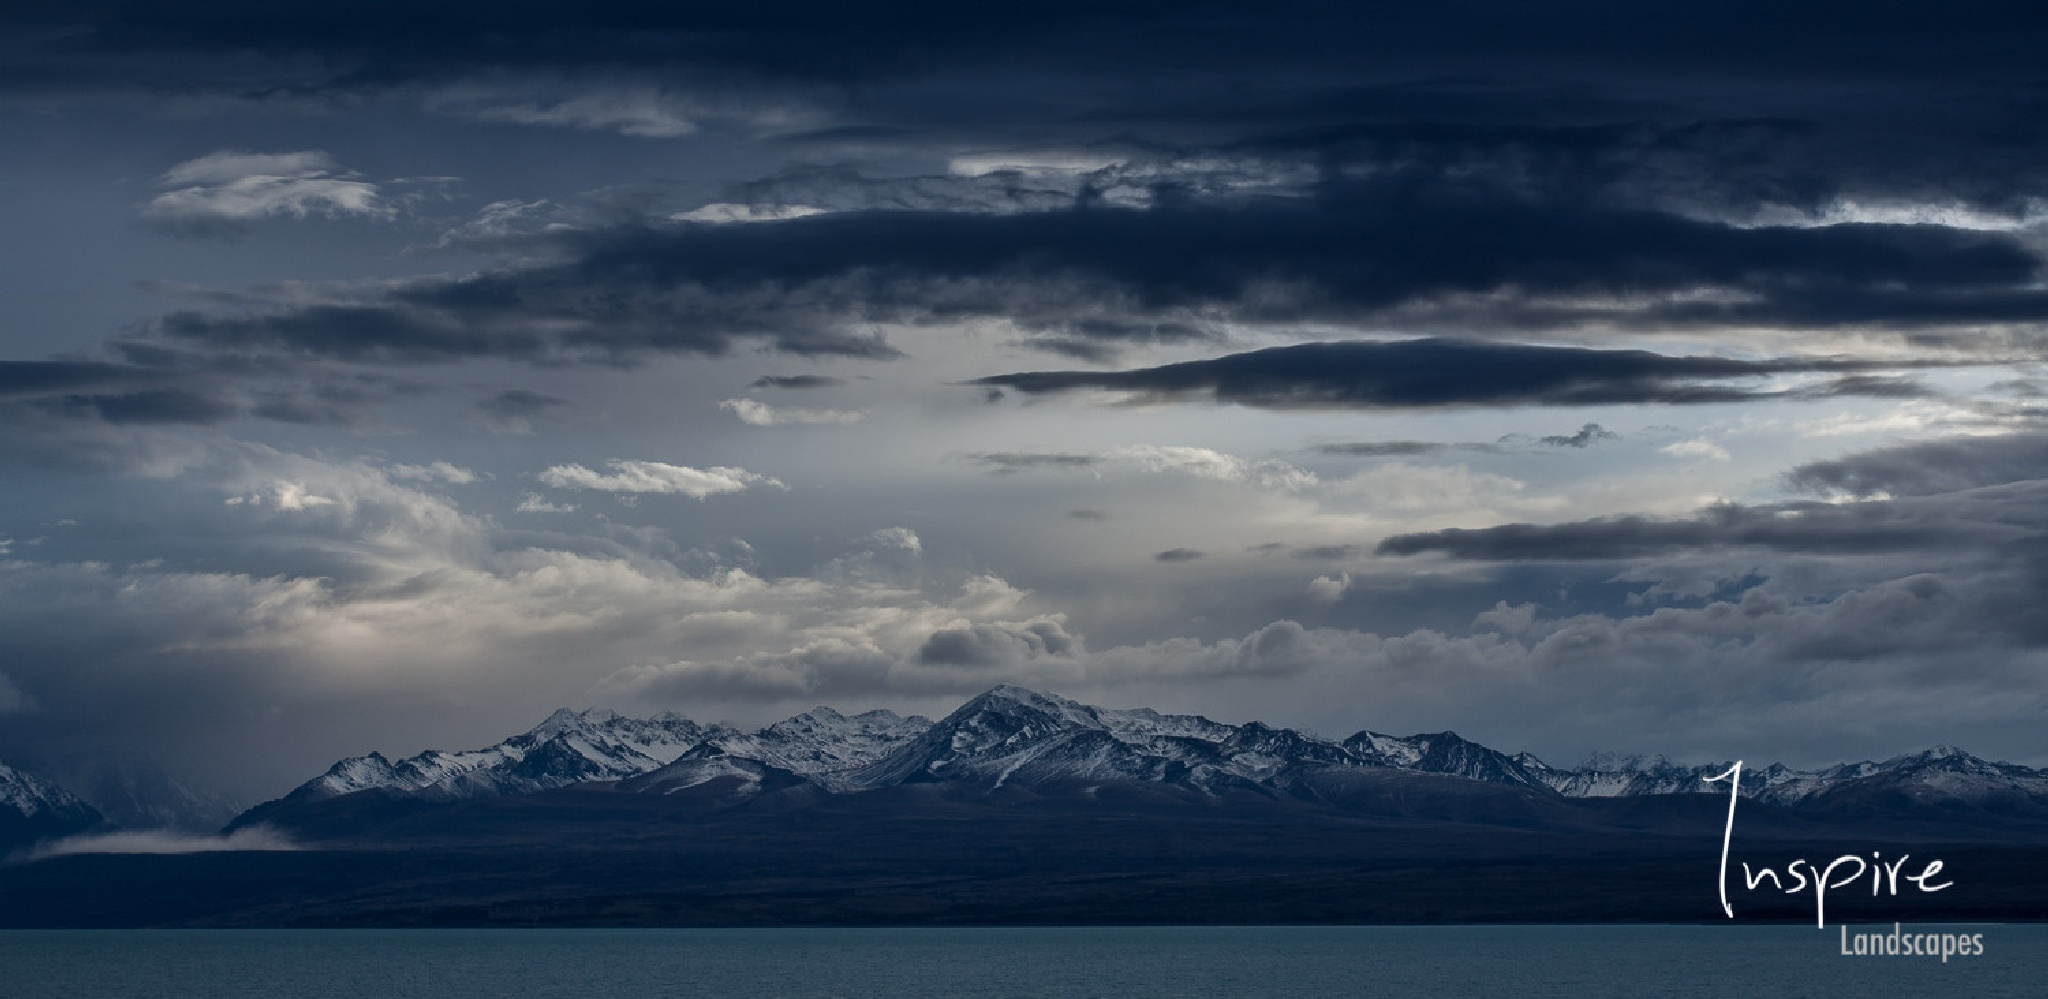 Mount Cook clouds, New Zealand by inspirelandscapes